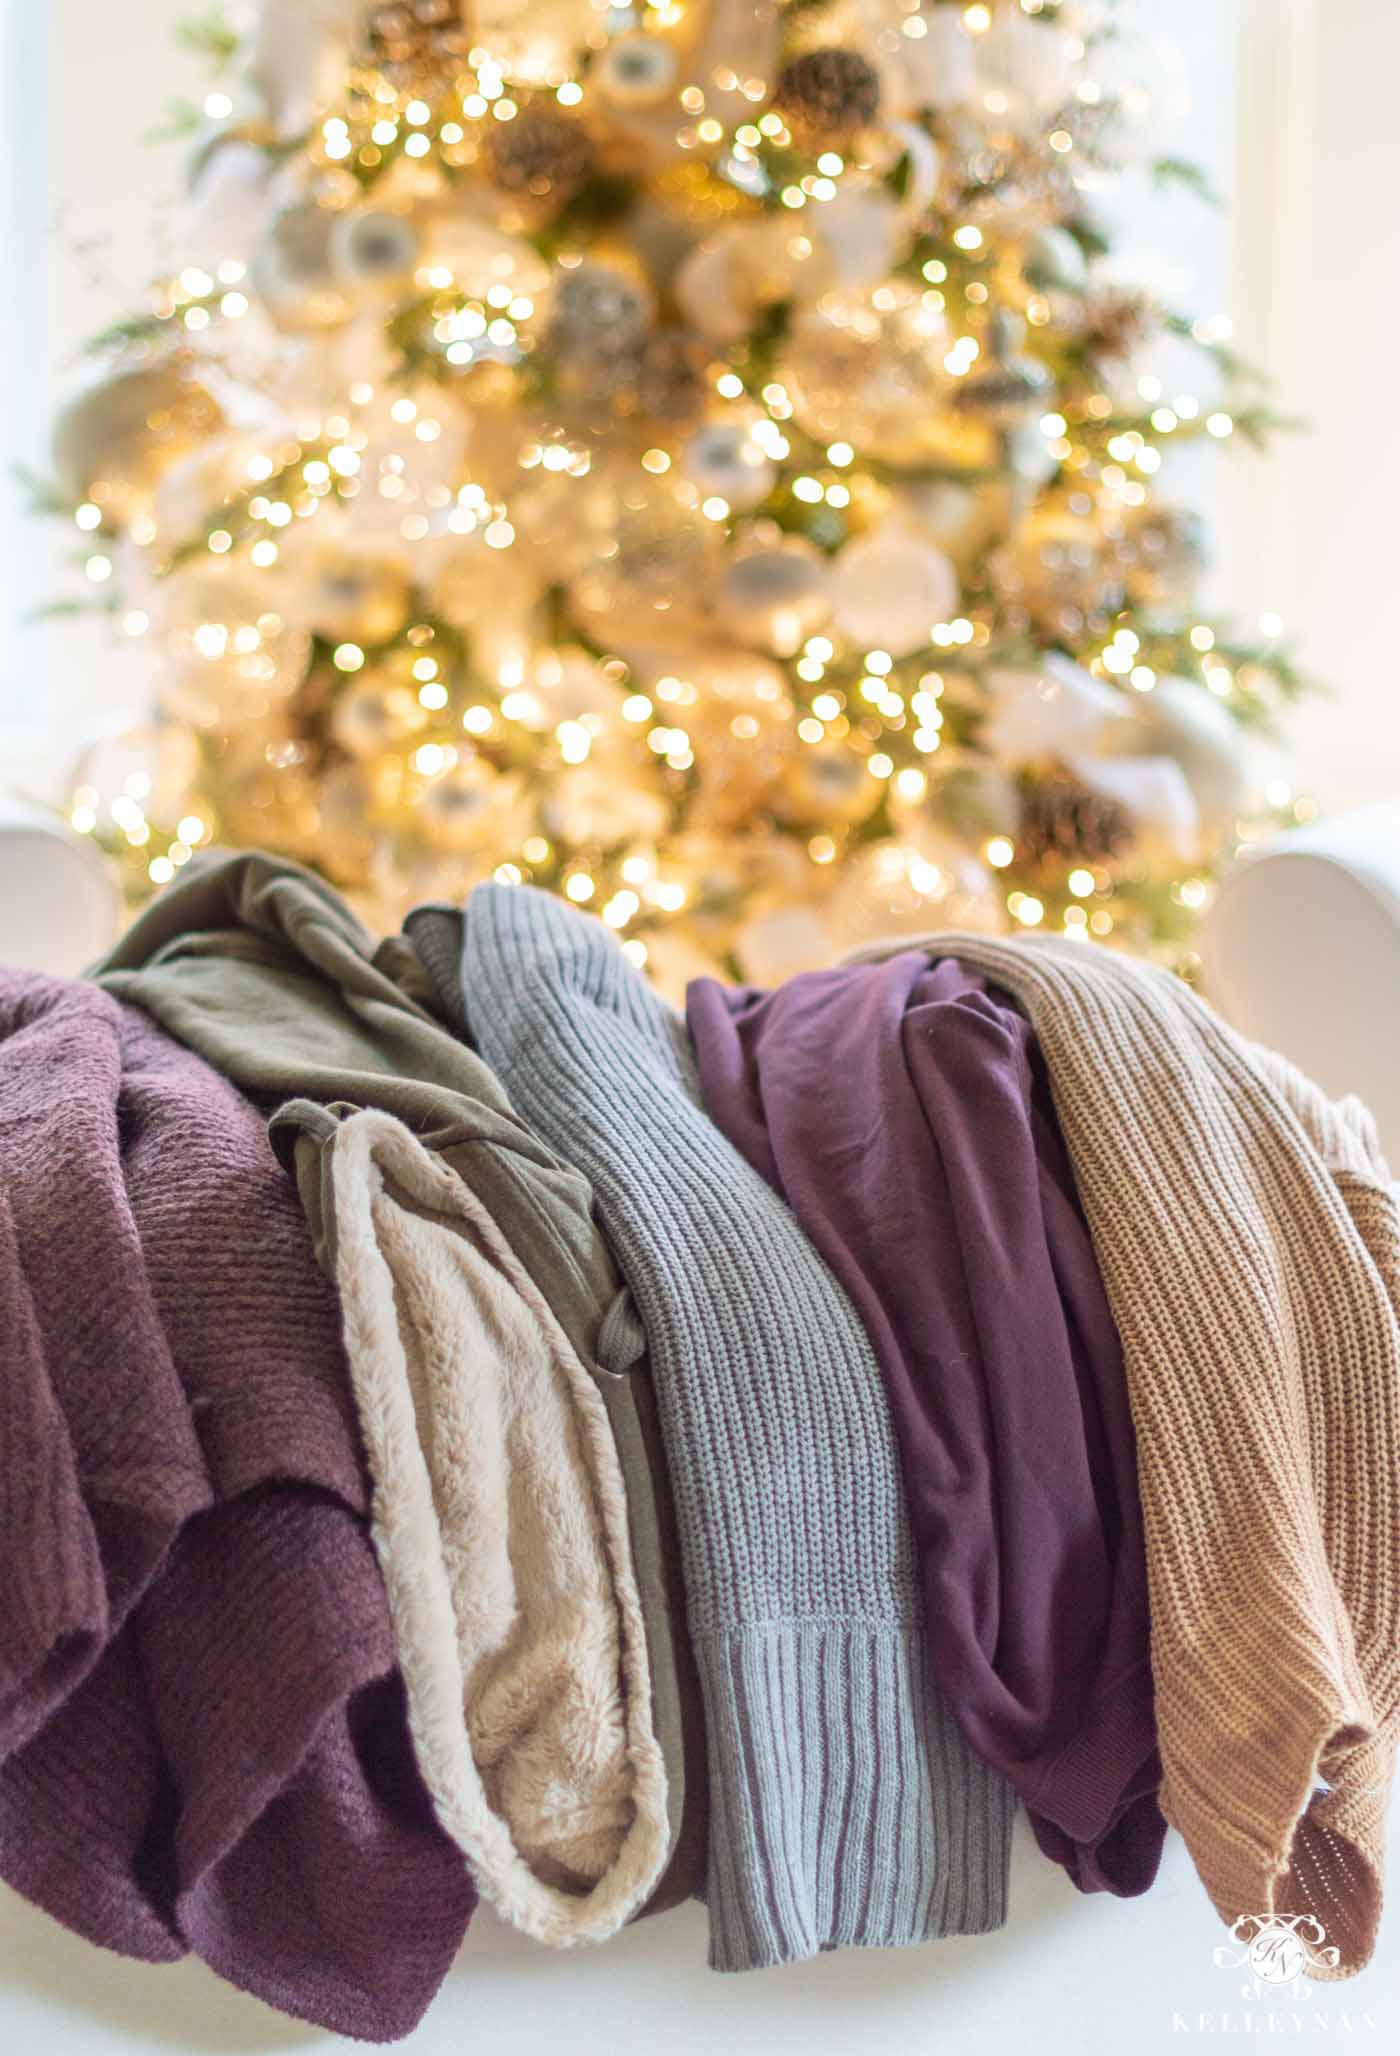 Coziest sweaters, sweatshirts, hoodies, cardigans and scarves of winter 2019